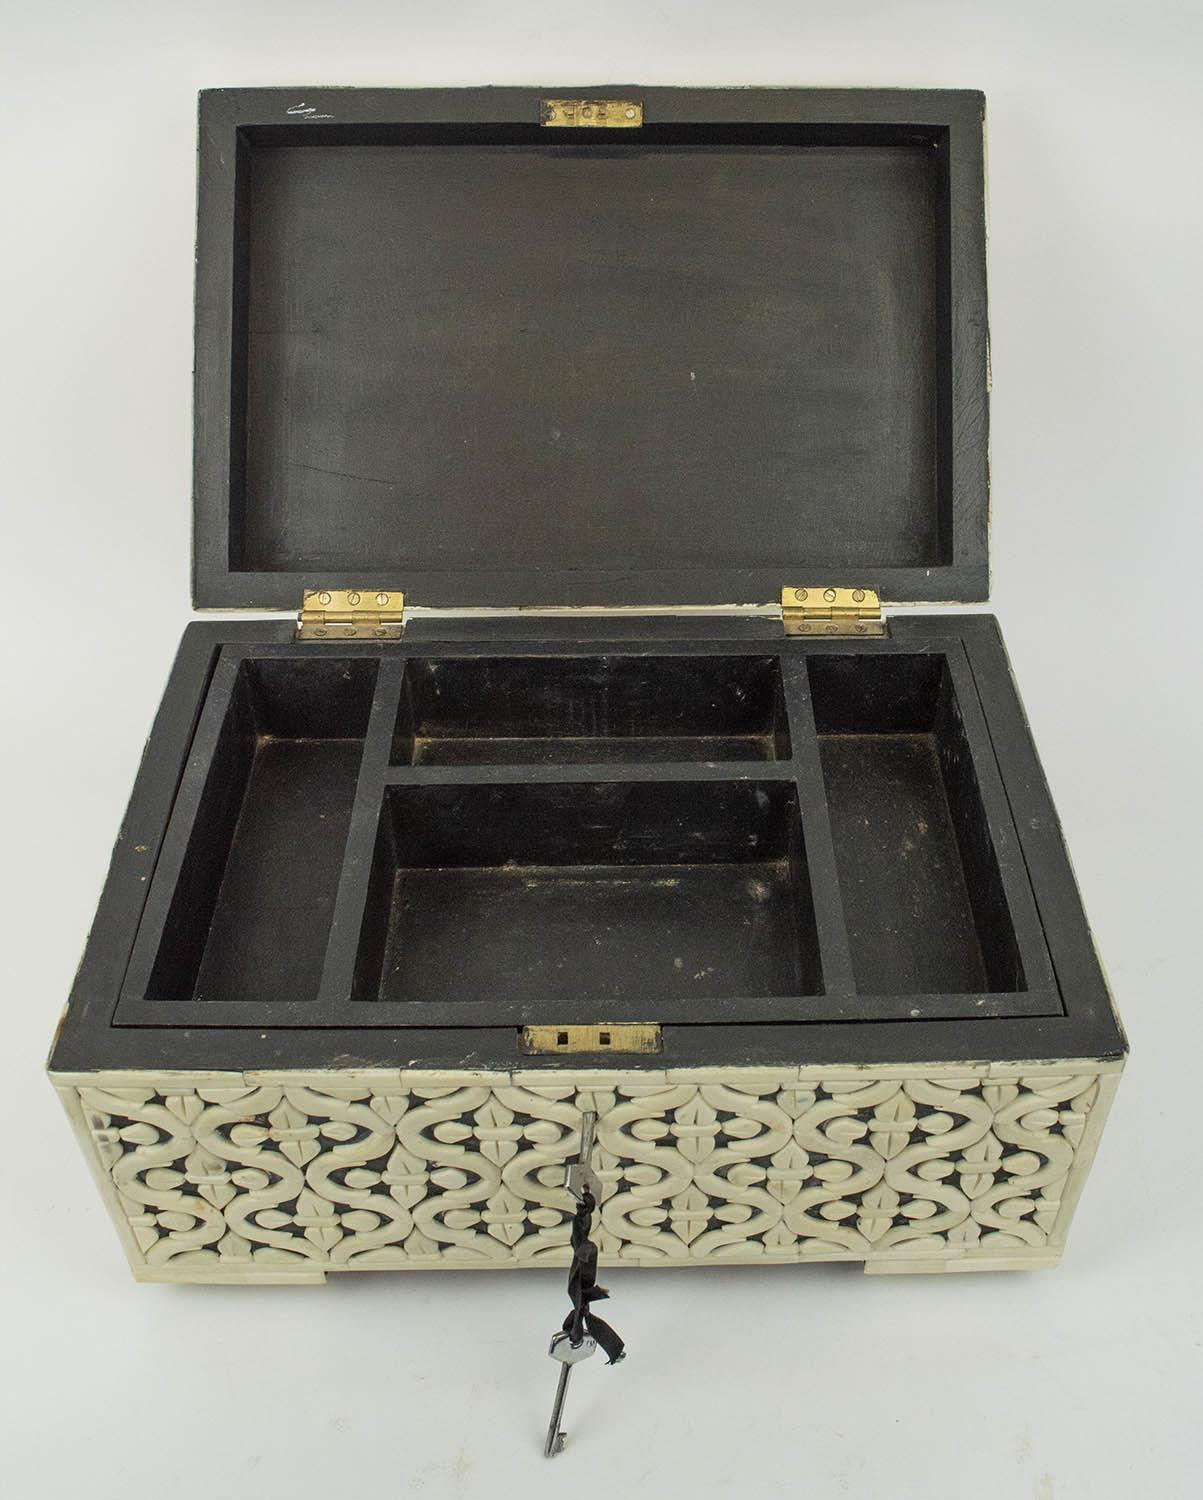 CASKET, bone geometric clad with hinged top and interior tray, 22cm H x 38cm x 25cm. - Image 6 of 7